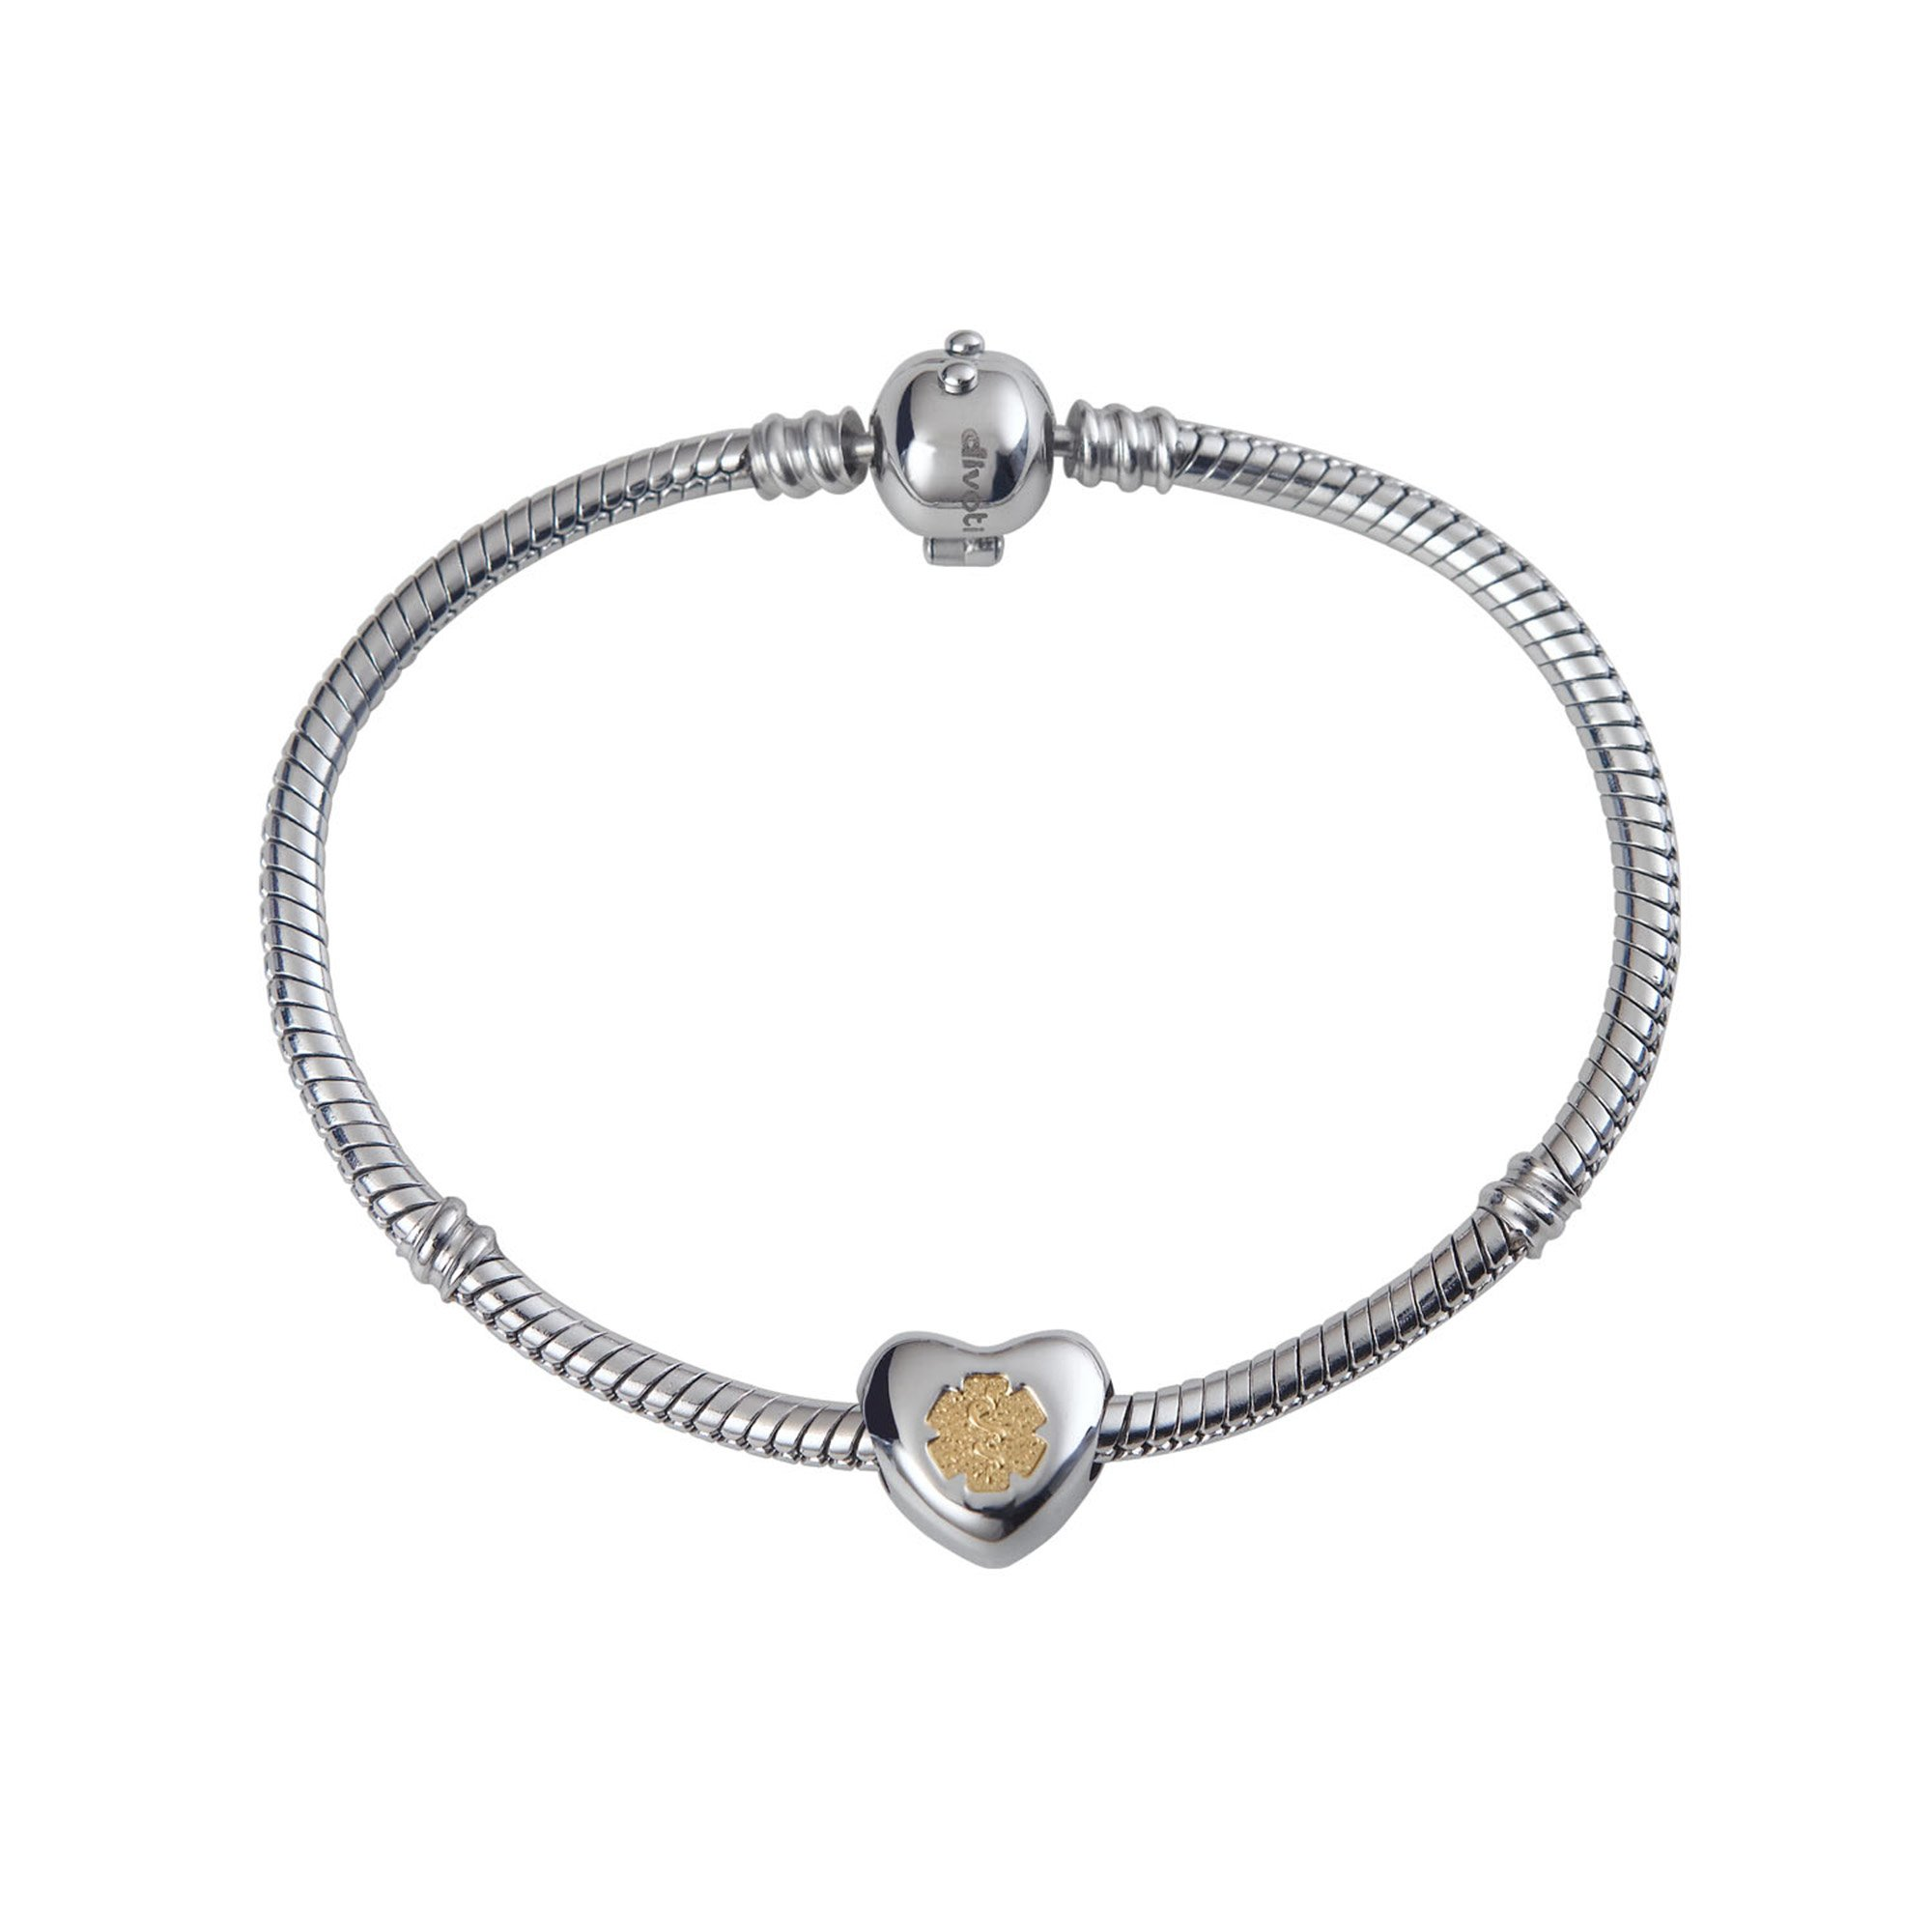 Divoti Custom Engraved DYO European Charm Medical Alert Bracelet for Women -8.0'' by Divoti (Image #1)